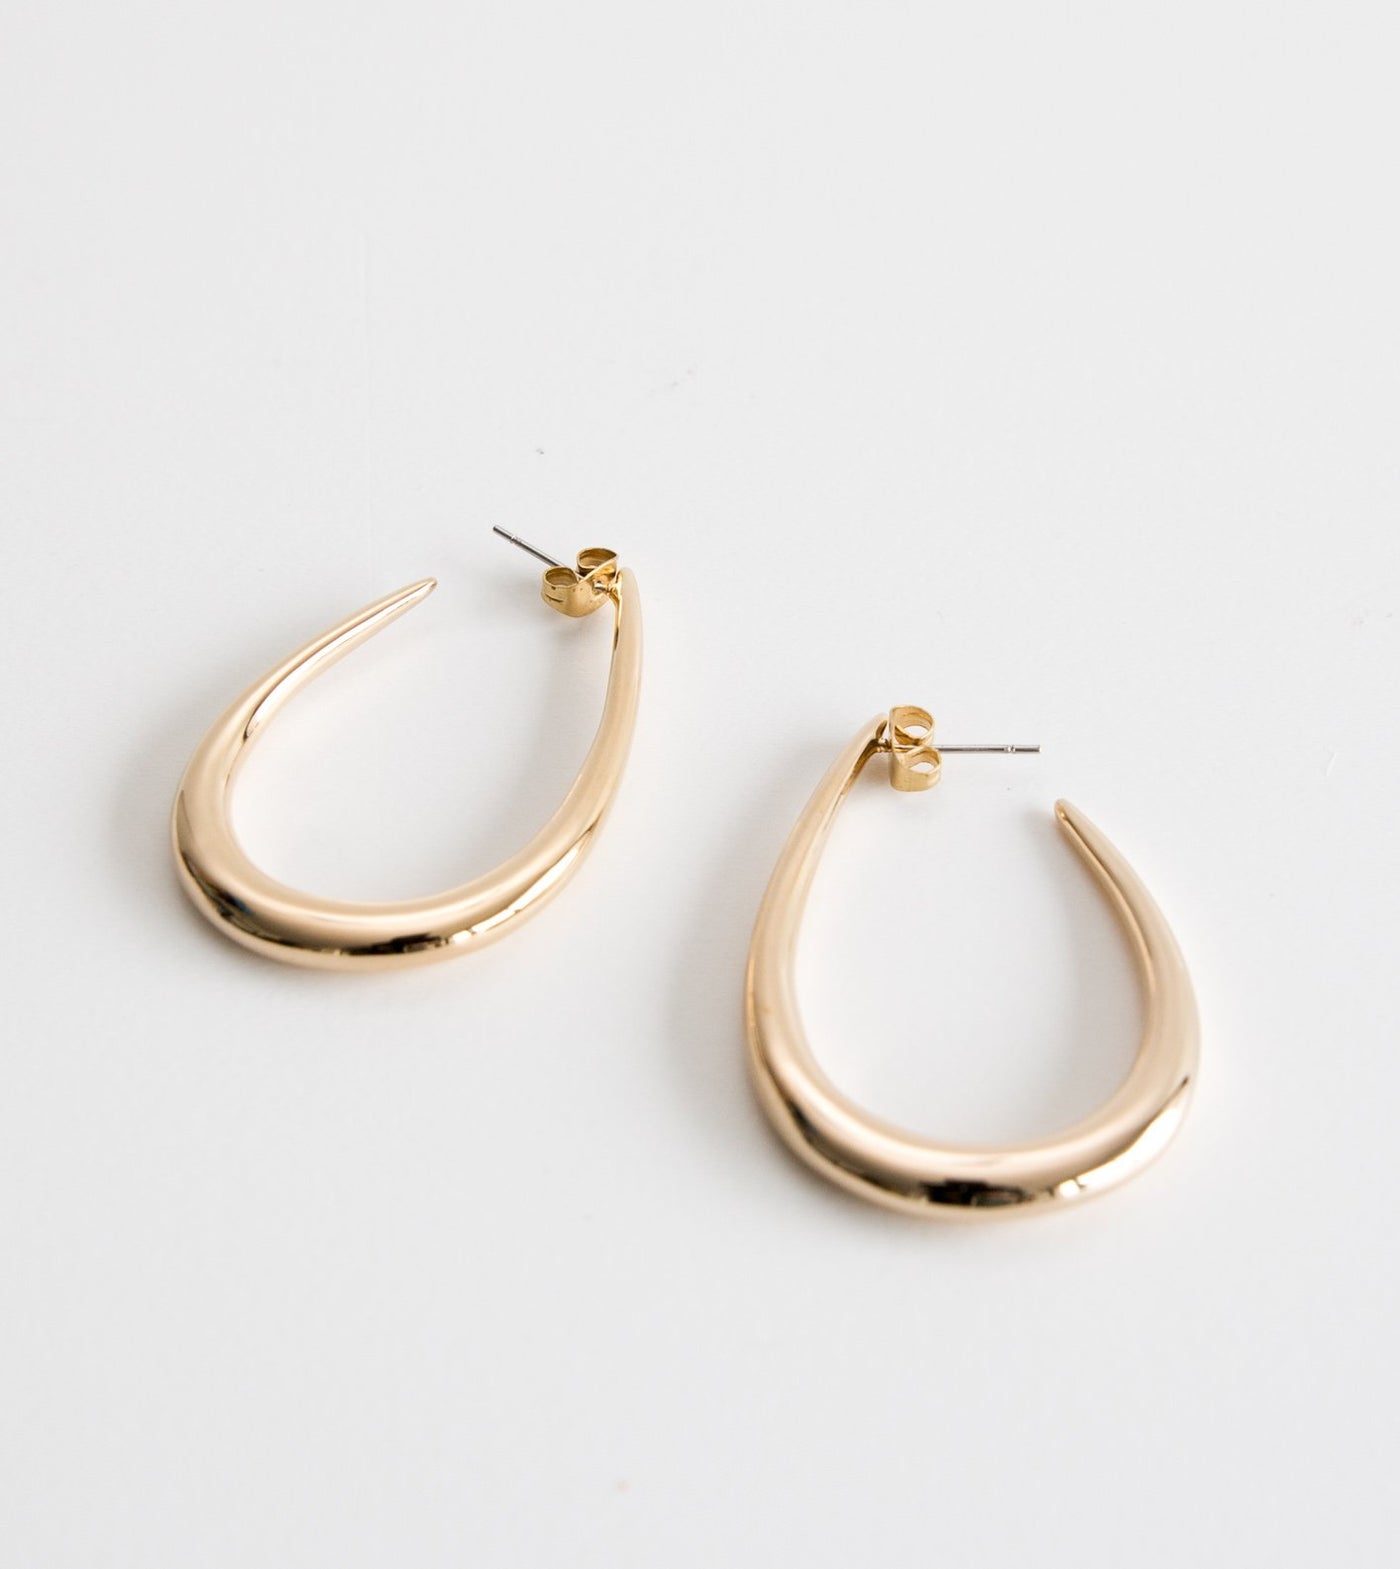 soko jewelry australia, statement jewelry, statement hoops, hoop earrings australia